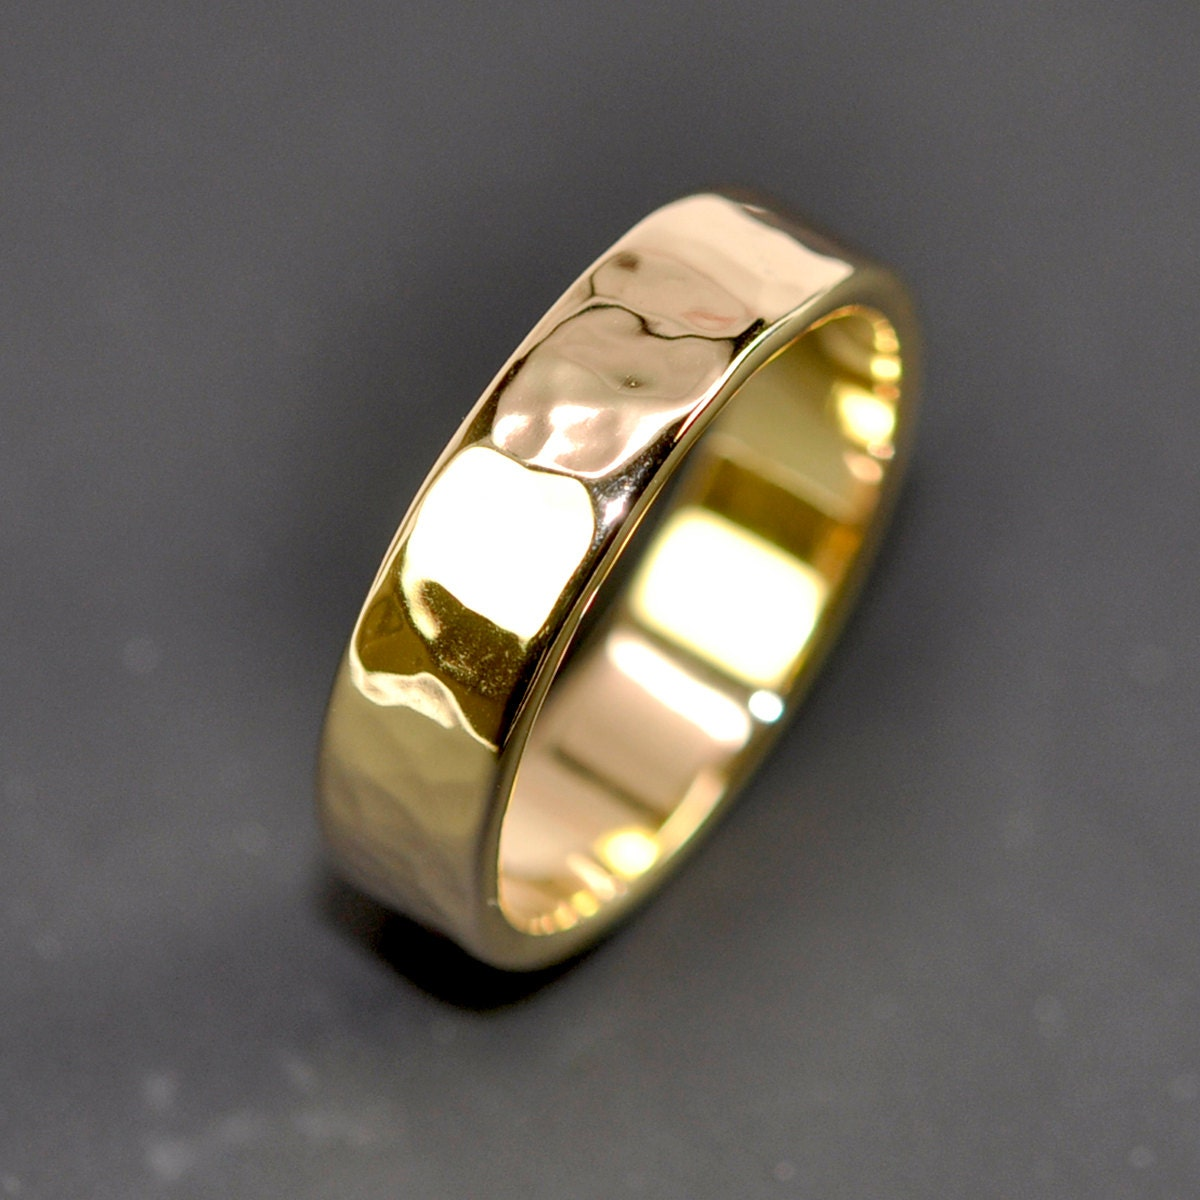 band carbide ring black tungsten anniversary wedding engagement gold brushed man rose male matching dome mens rings products bands women